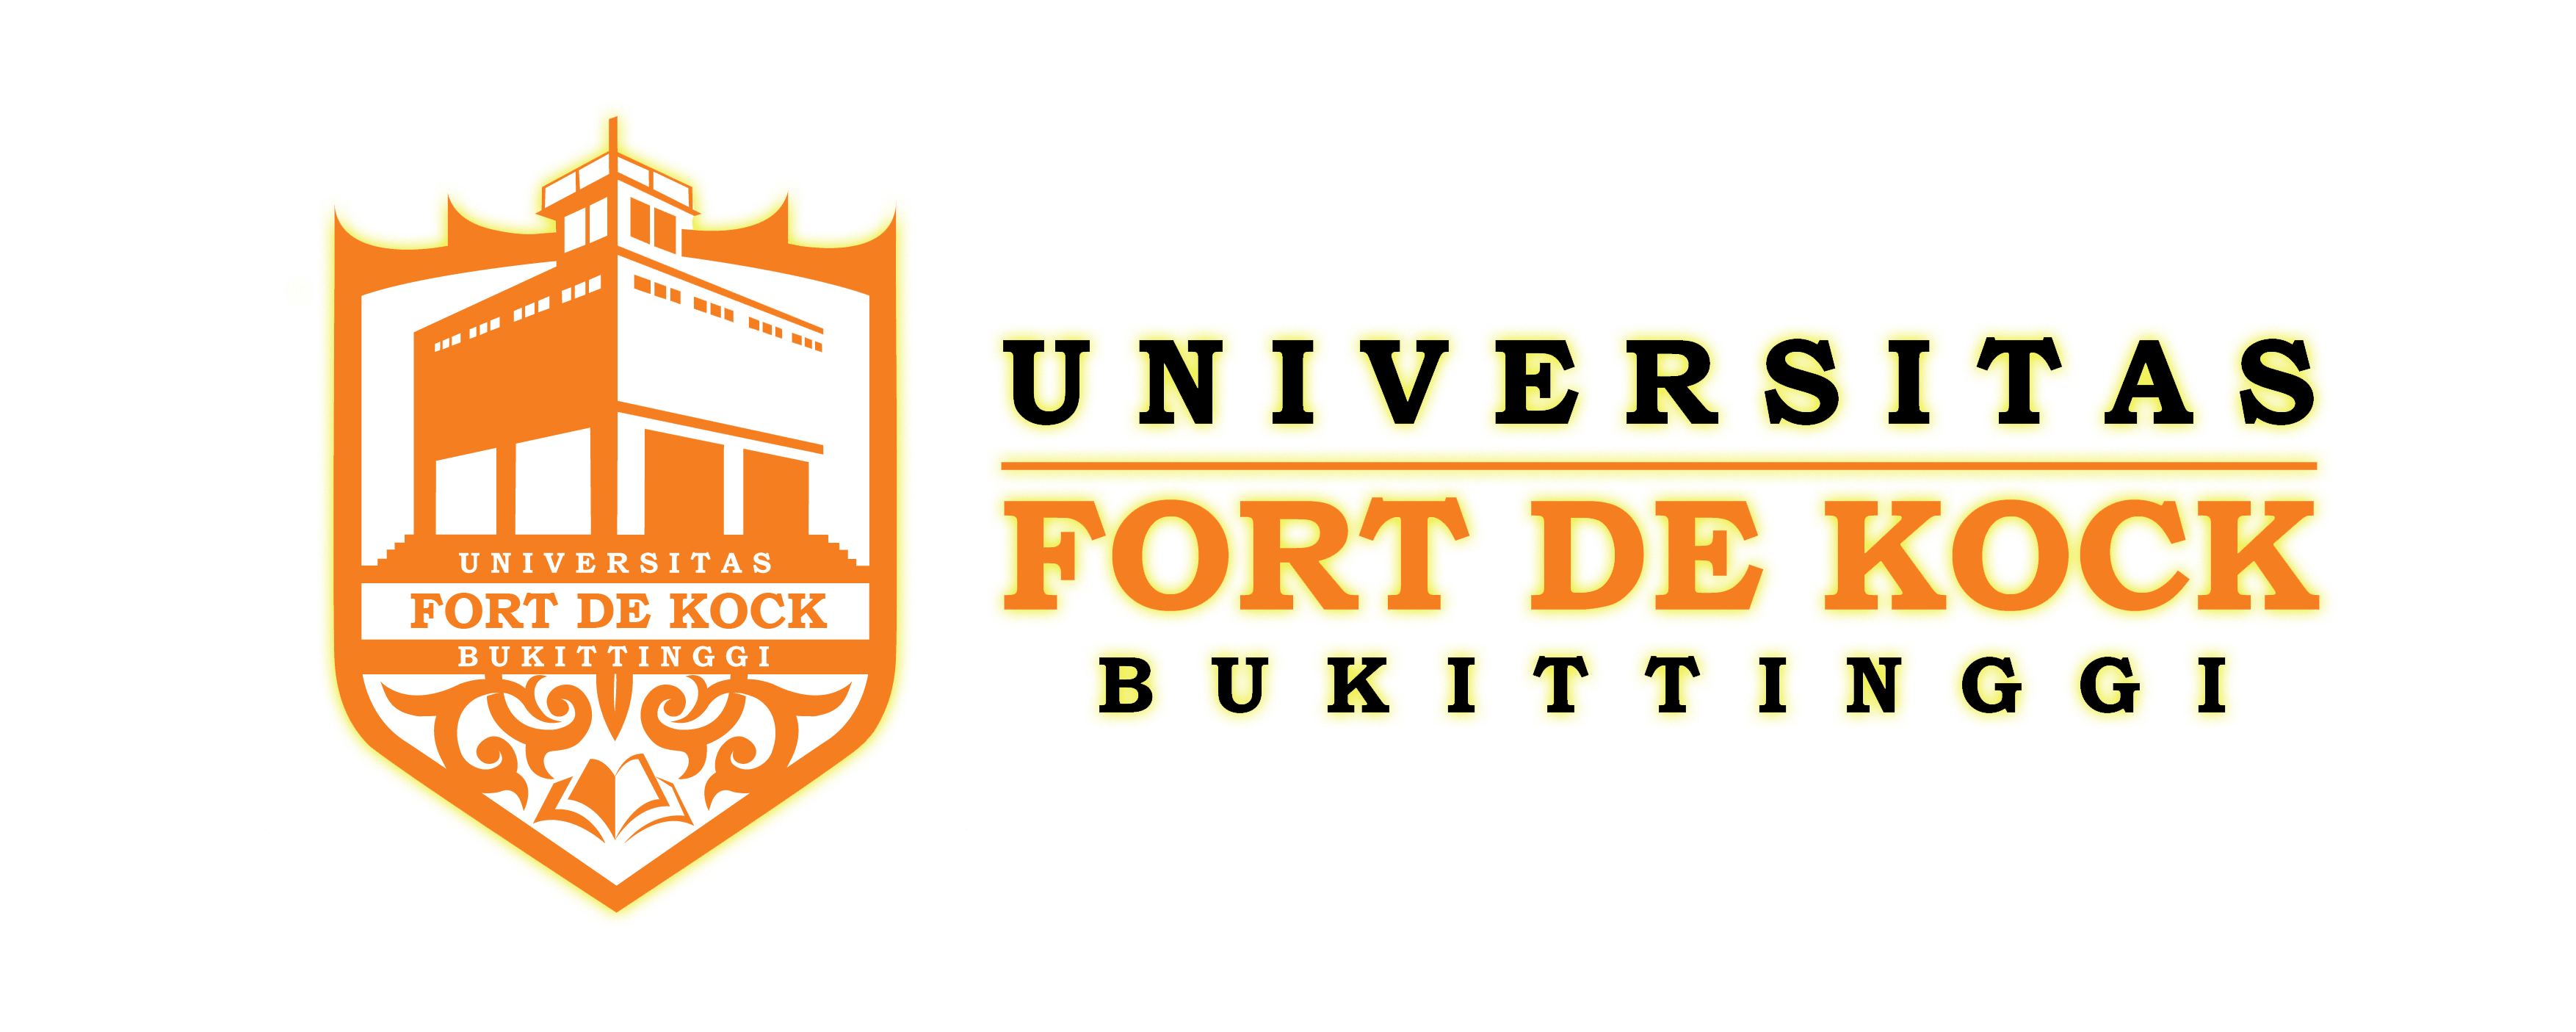 UNIVERSITAS FORT DE KOCK BUKITTINGGI